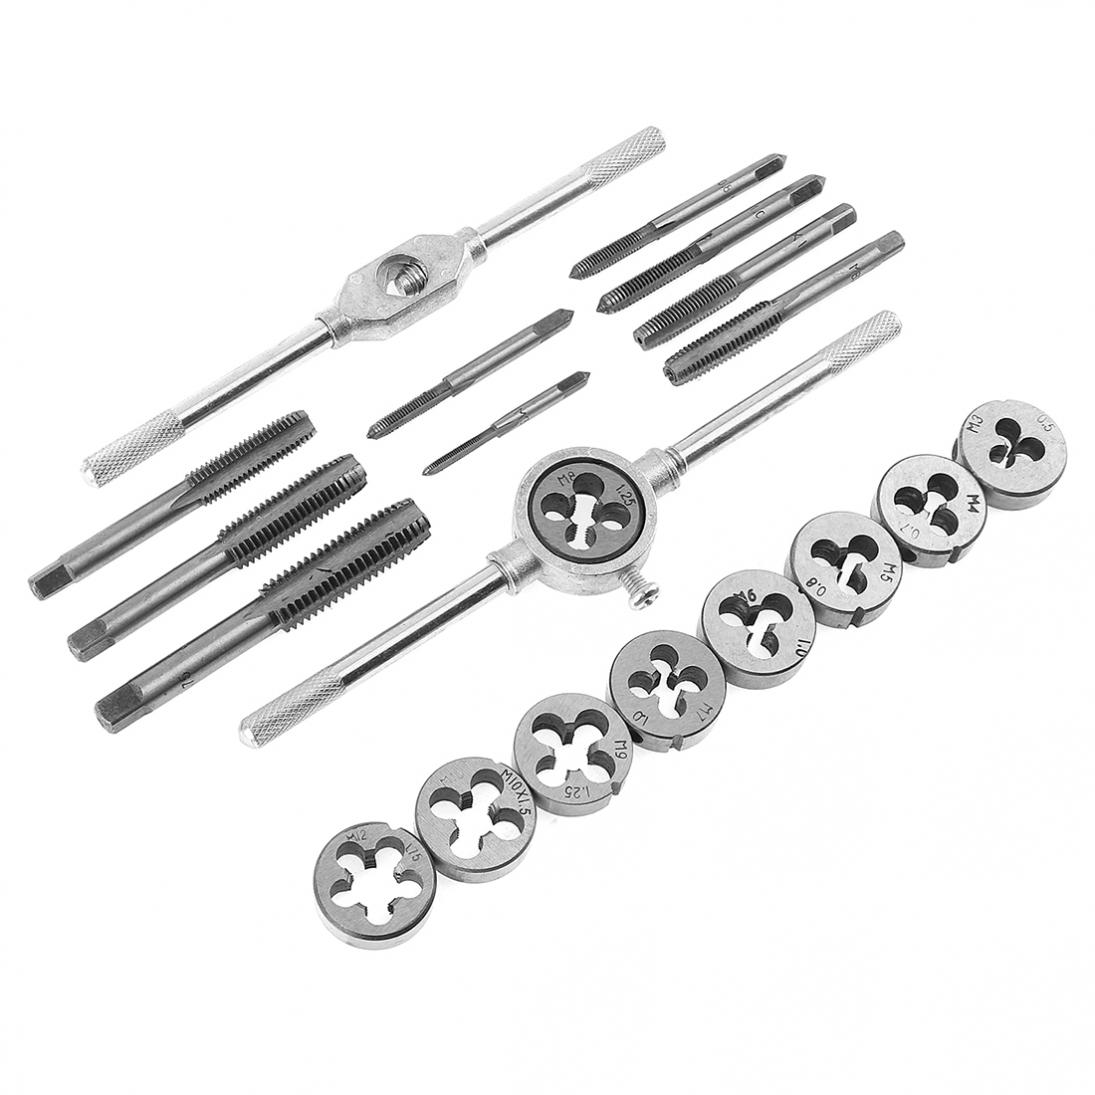 20pcs Alloy Steel Tap & Die Set with Small Tap Twisted Hand and 1/16-1/2 Inch NC Screw Thread Plugs Hand Screw Taps 20pcs m3 m12 screw thread metric plugs taps tap wrench die wrench set